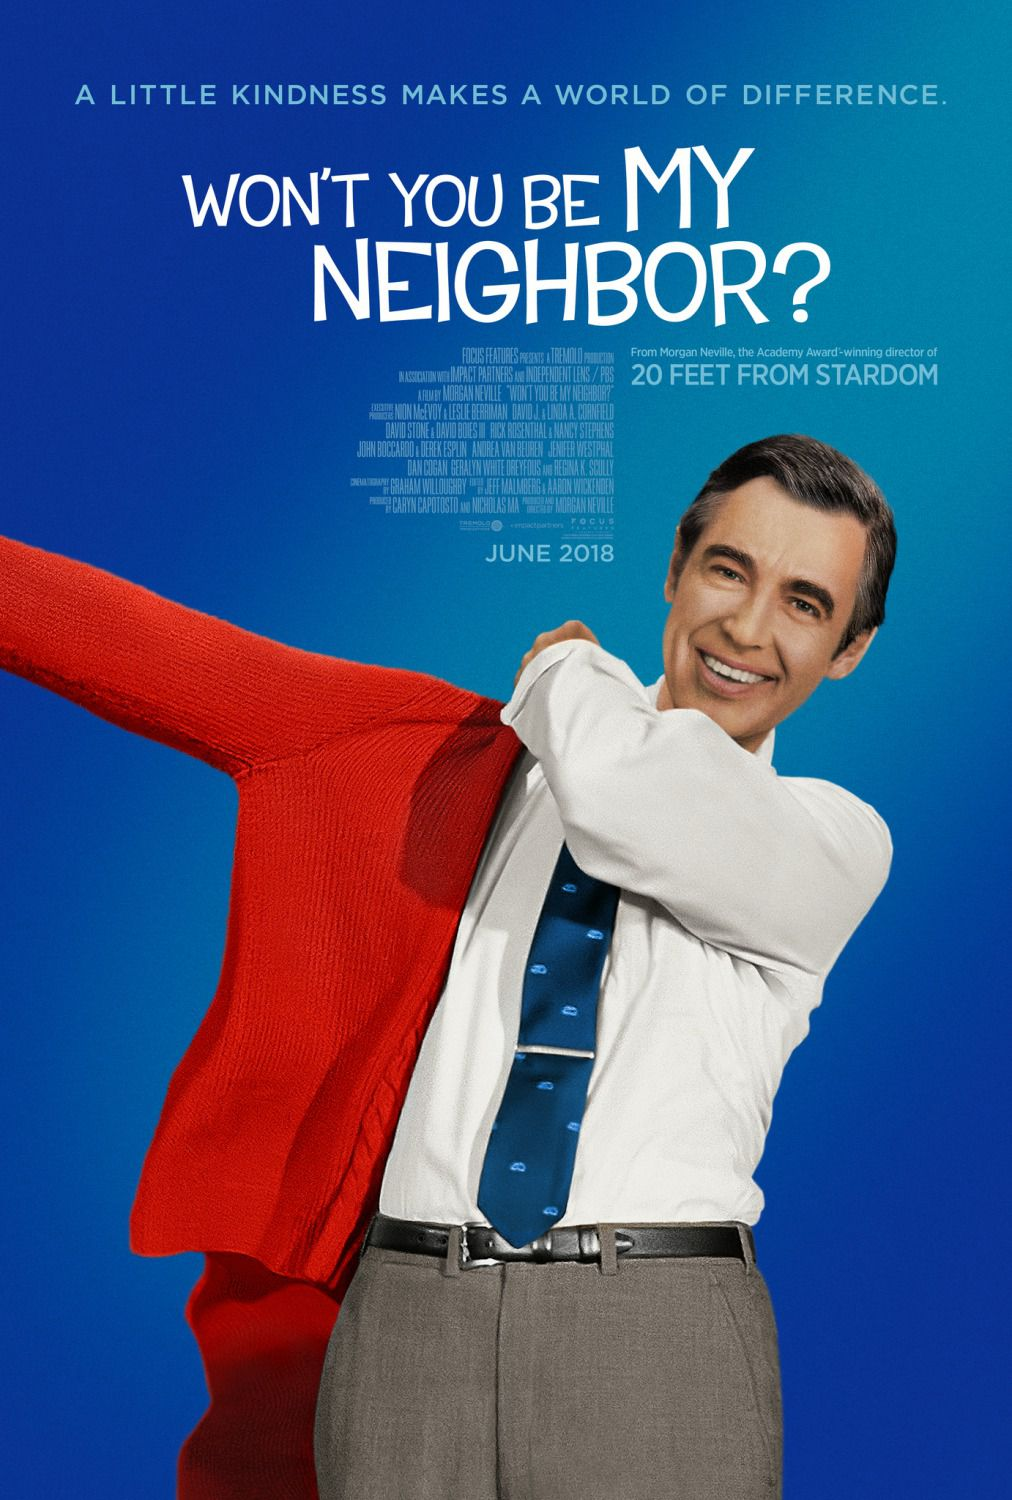 Wont You be my Neighbor - A little kindness makes a world of difference - Cast: Fred Rogers - comedy film poster 2018